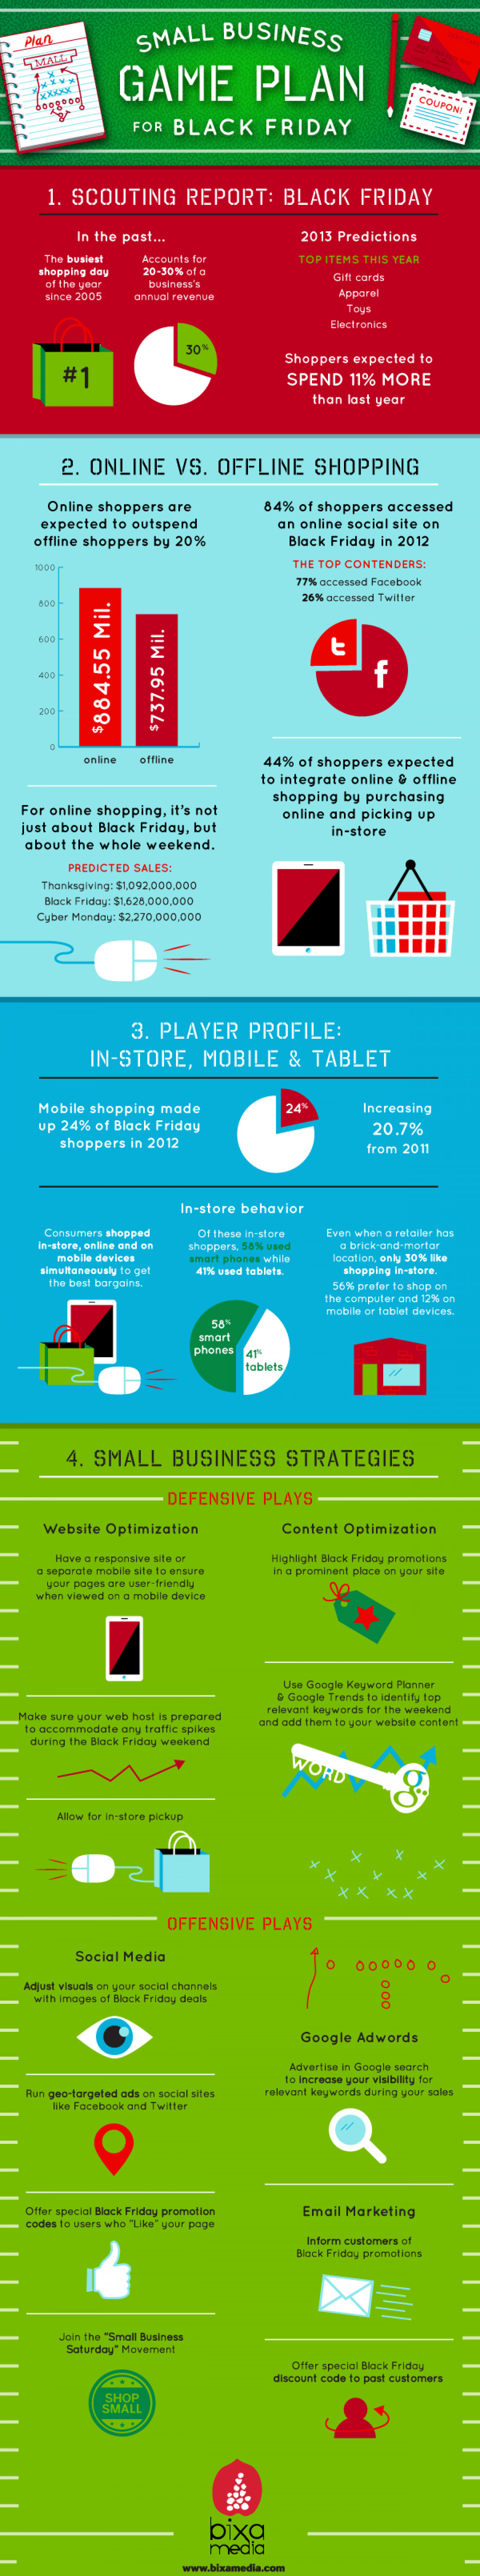 The Small Business Game Plan For Black Friday Infographic